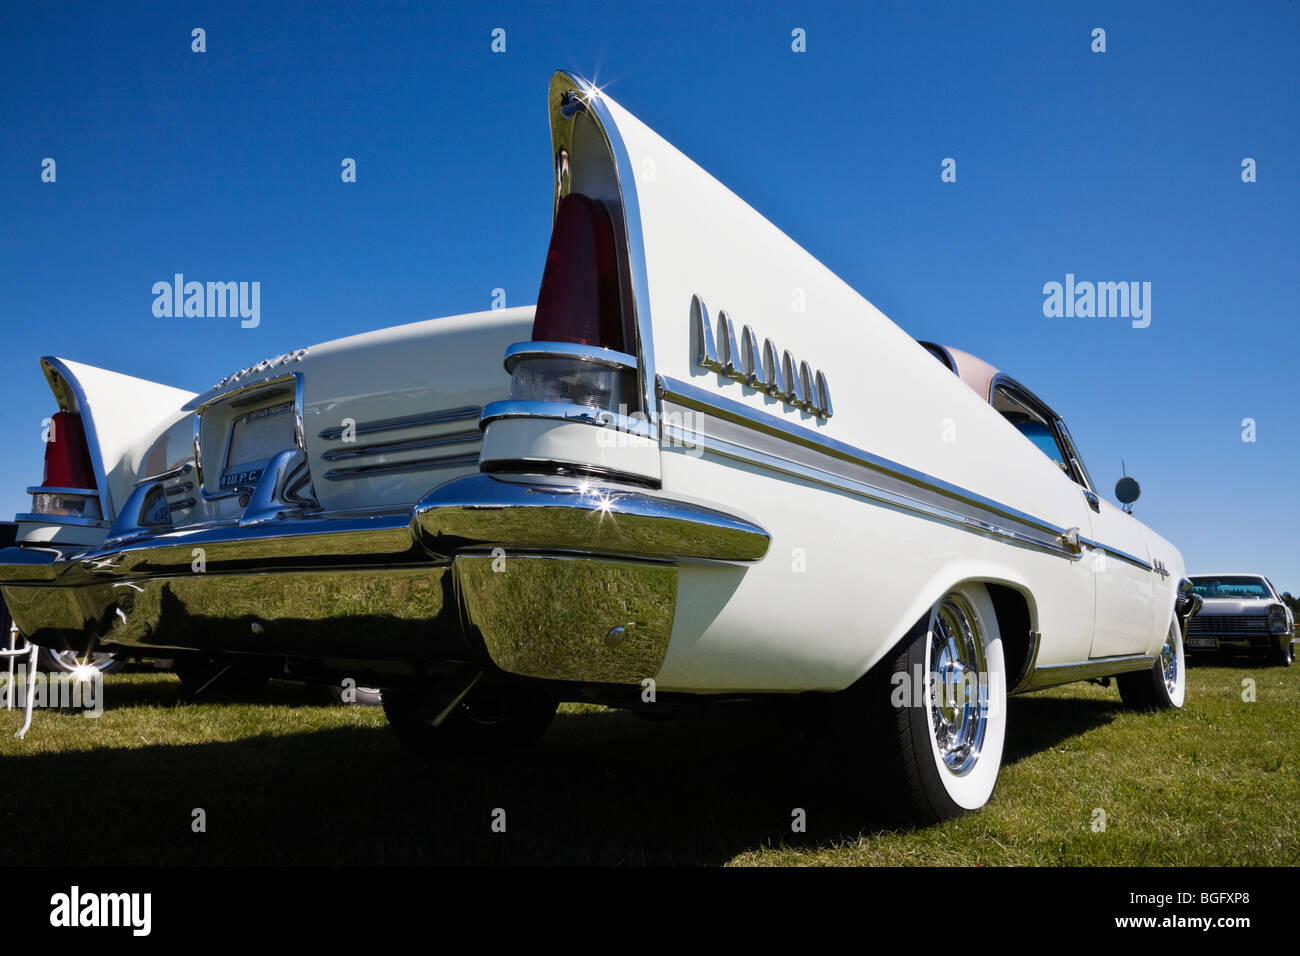 Rear view at a old Chrysler - Stock Image